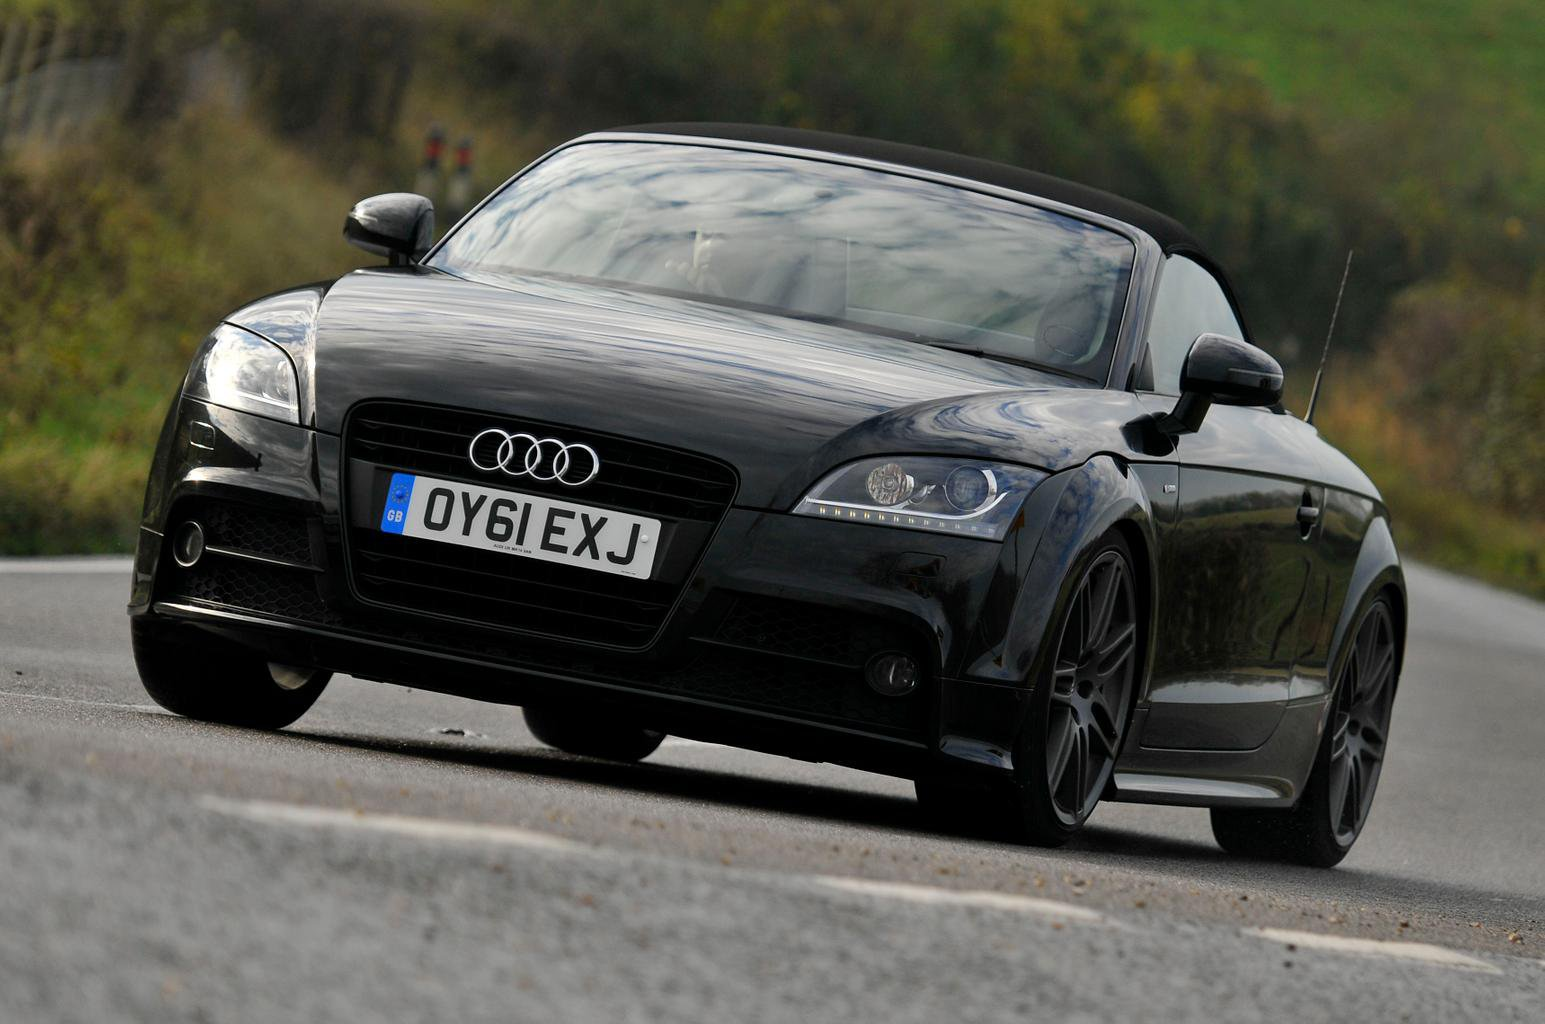 Used Audi TT vs BMW Z4